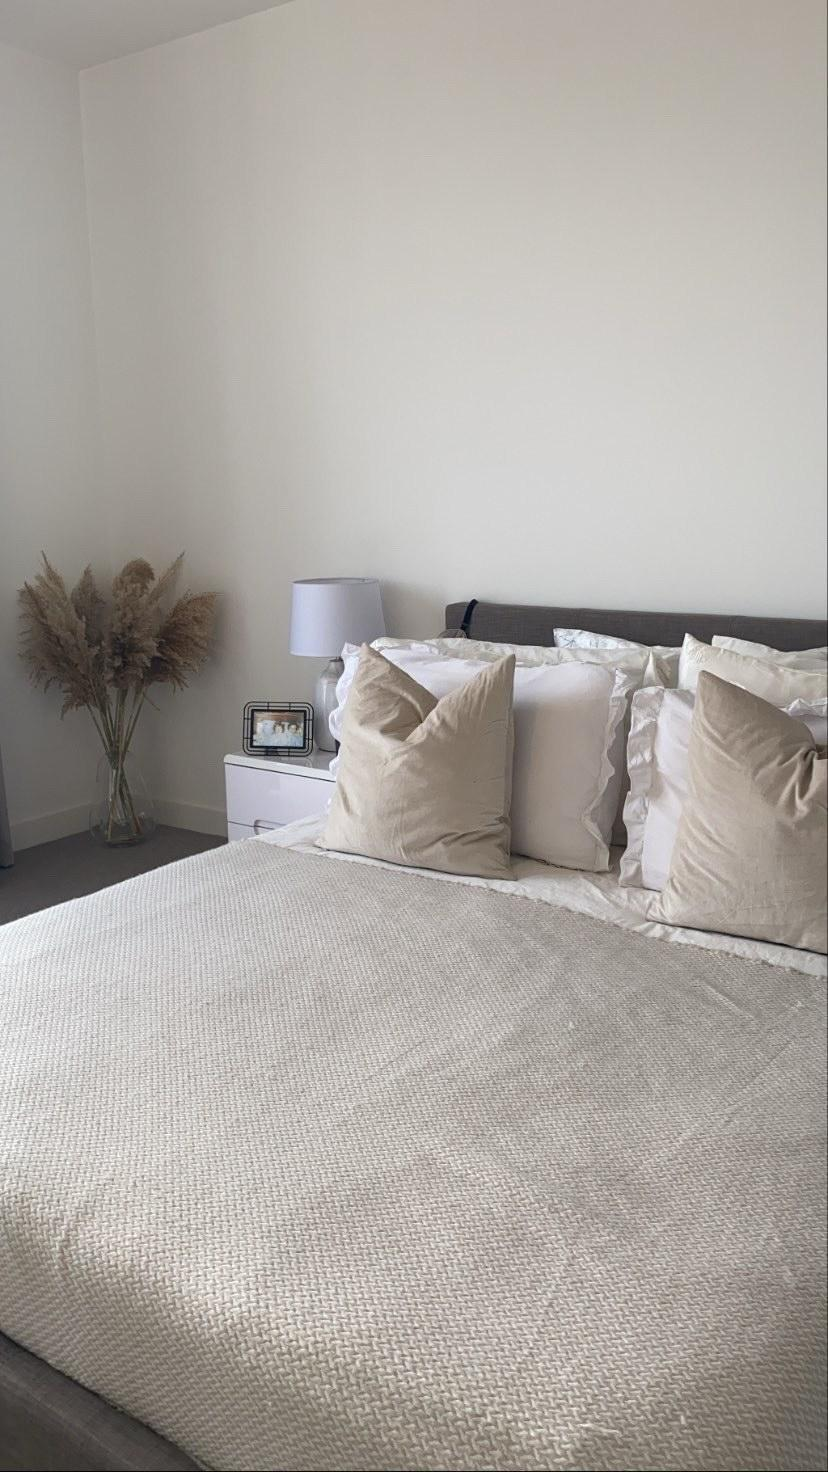 Bedroom setting that supports healthy sleeping routine